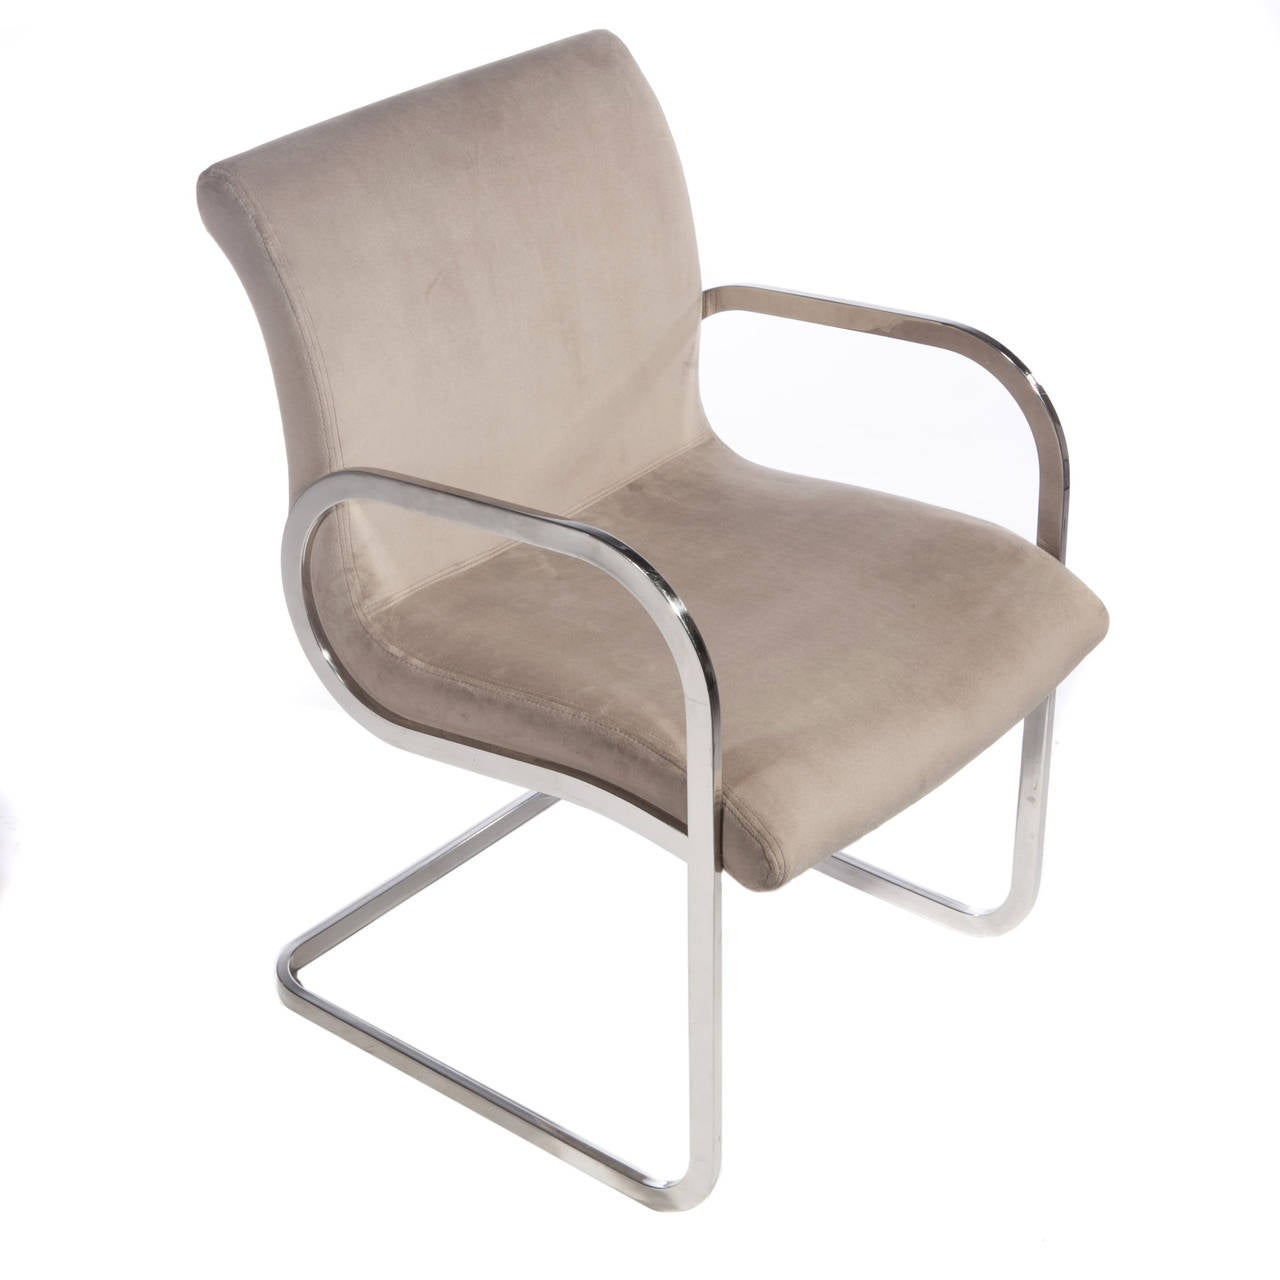 Pair Of 1970s Ghia Chairs By Charles Gibilterra For